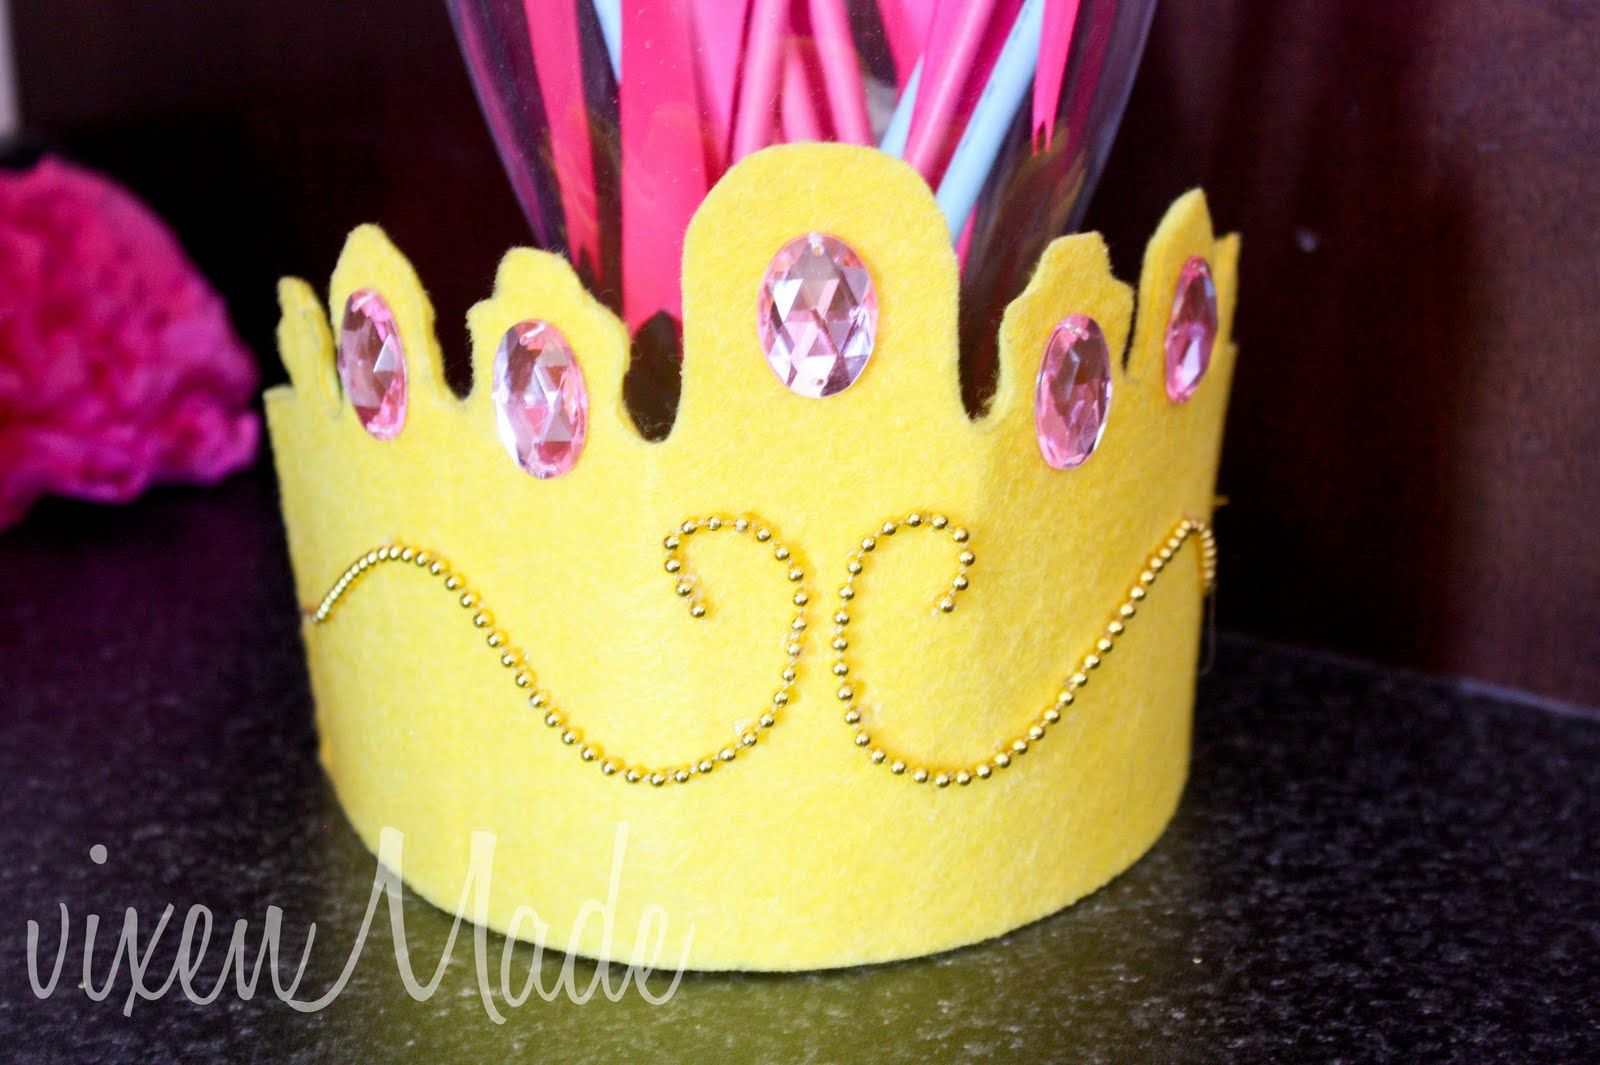 Pinkalicious Party Crown...can make in many colors and styles for depending on the what kind of princess your little girl wants to be that day! So cute!